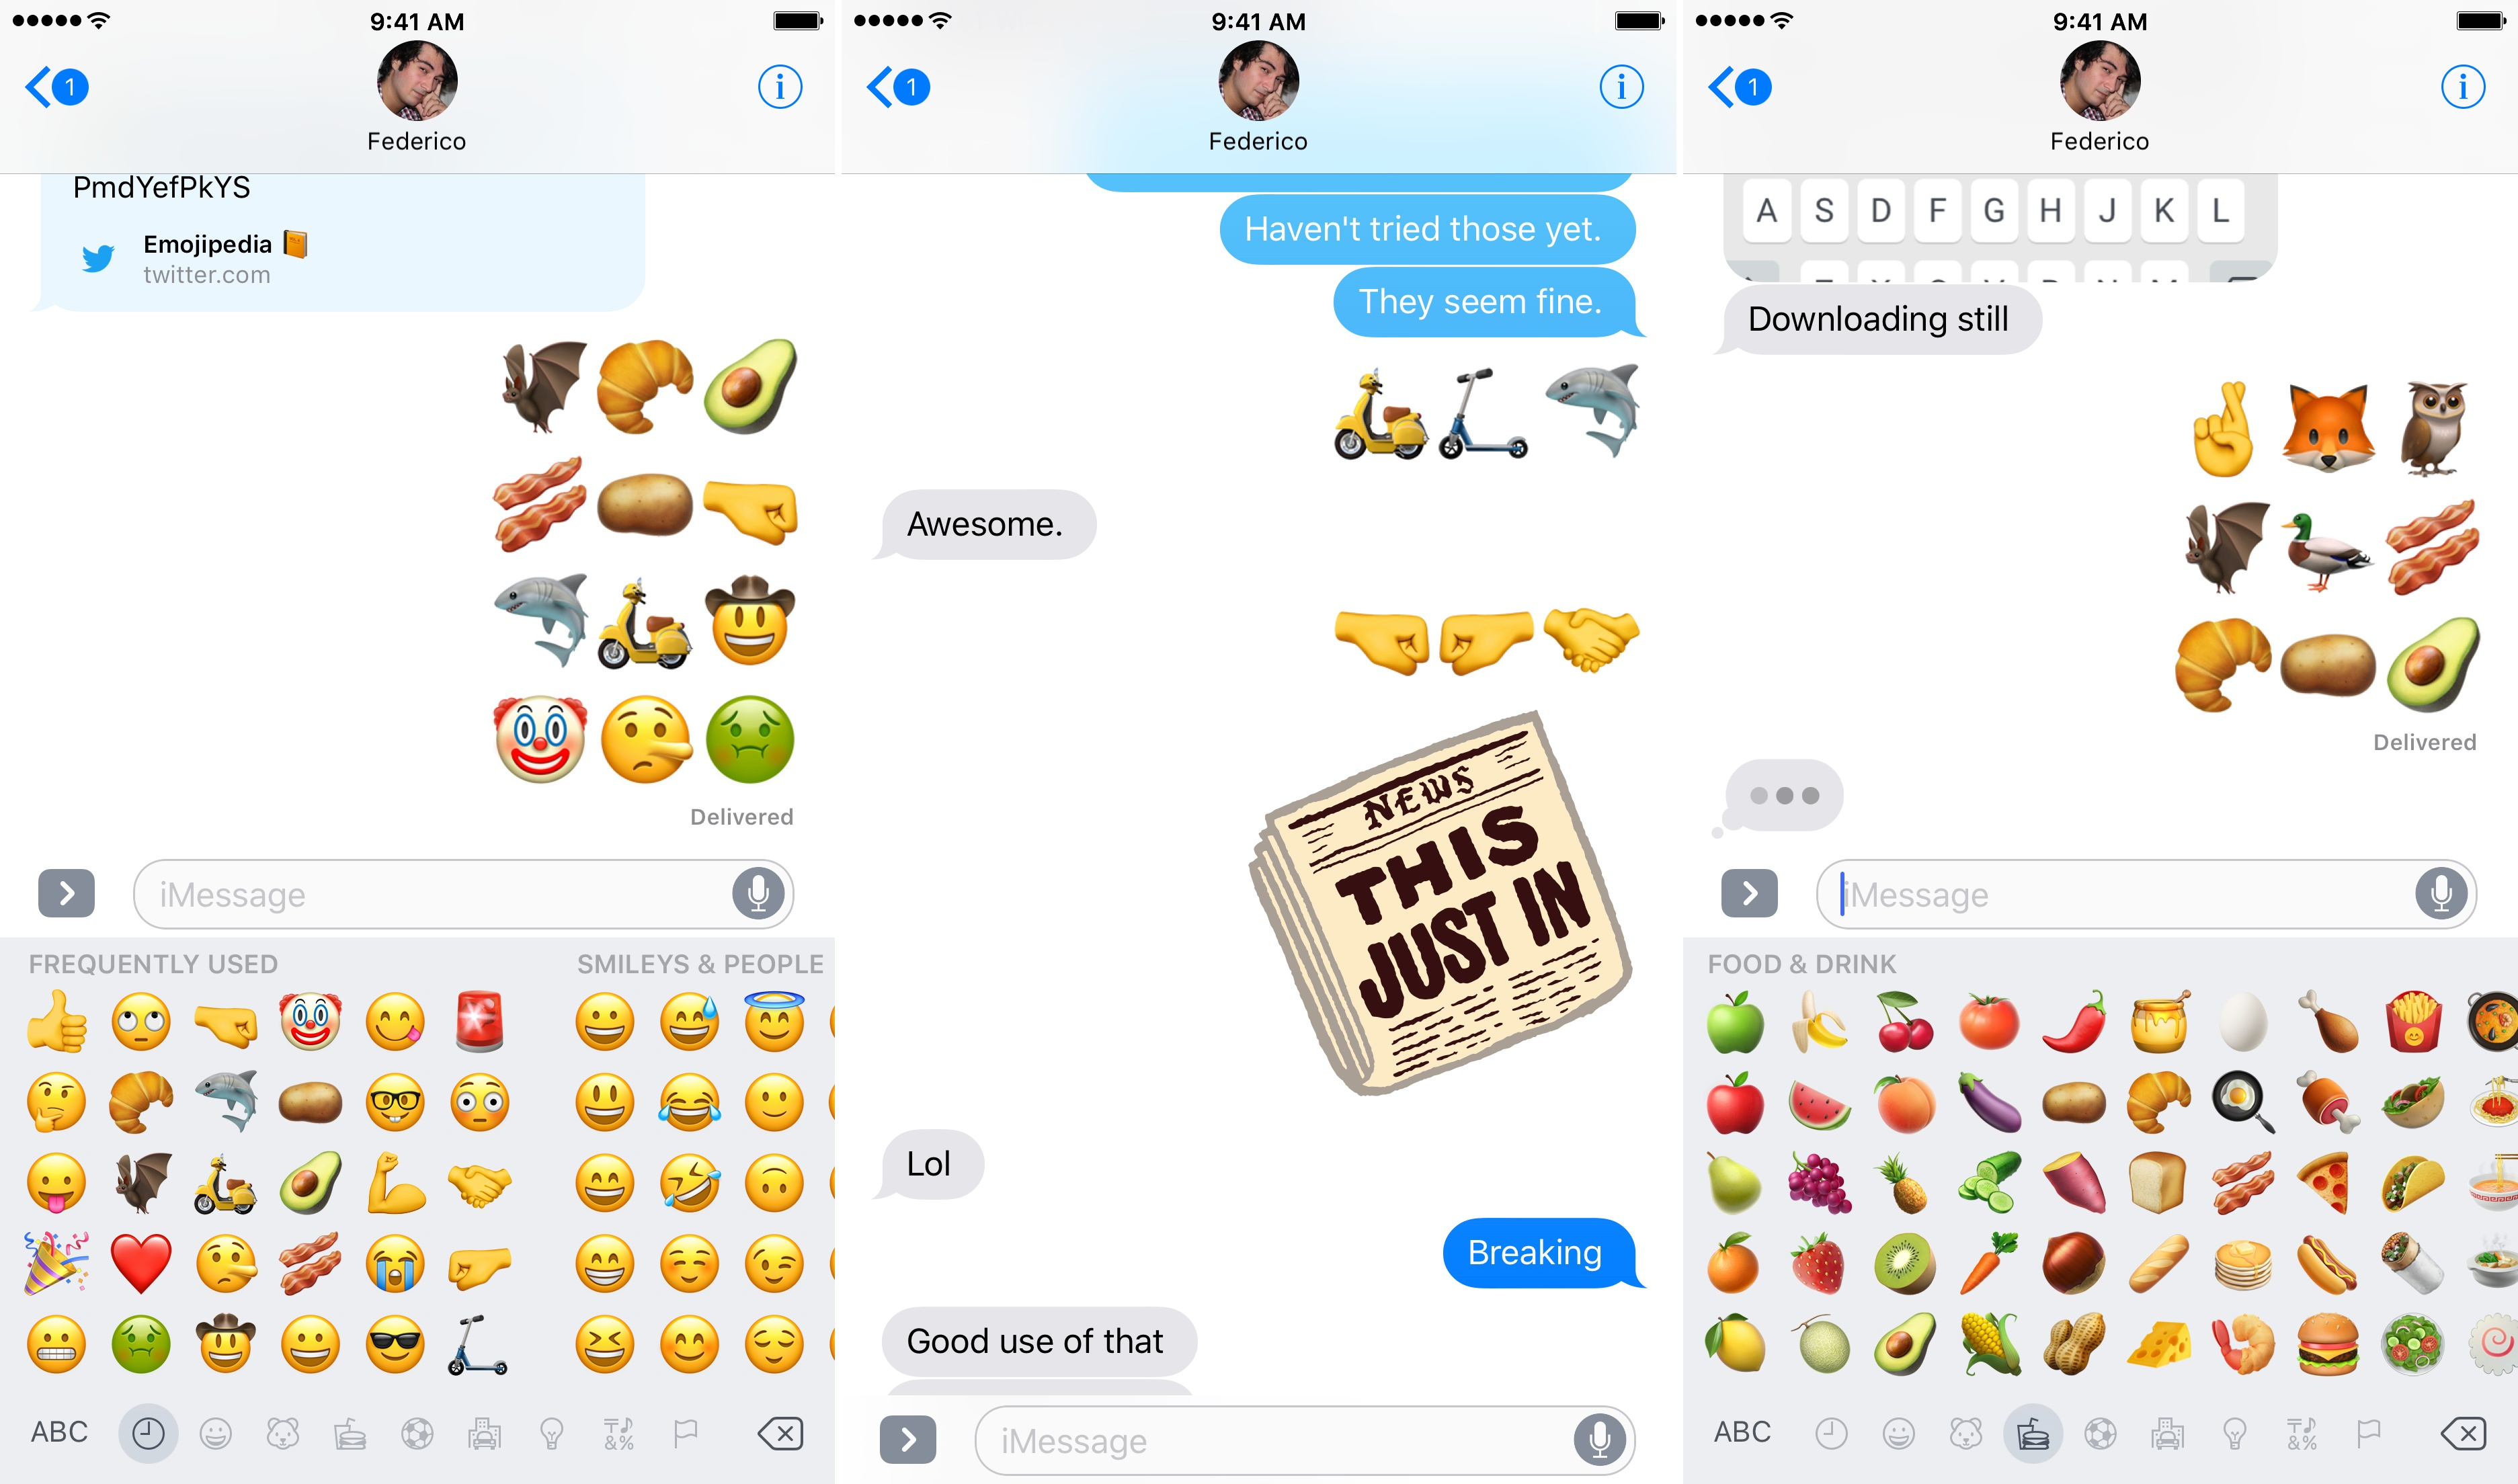 iOS 10 2 Beta Brings New Emoji, Wallpapers, and More